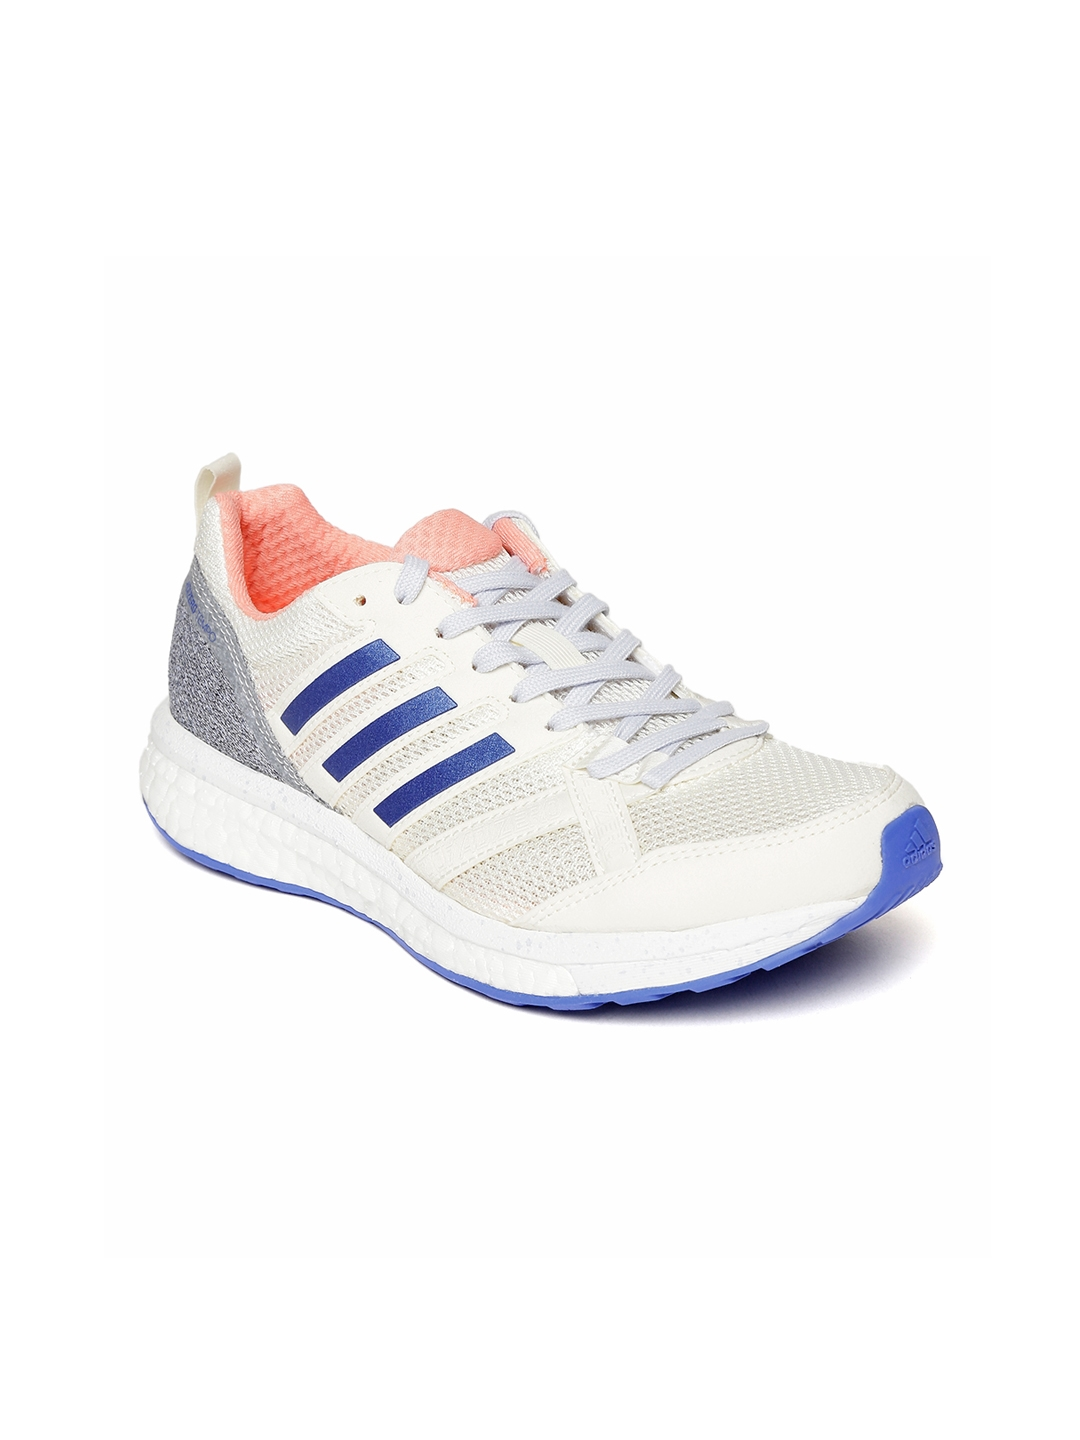 online store c8ae8 a92a9 Adidas Women White ADIZERO TEMPO 9 Running Shoes